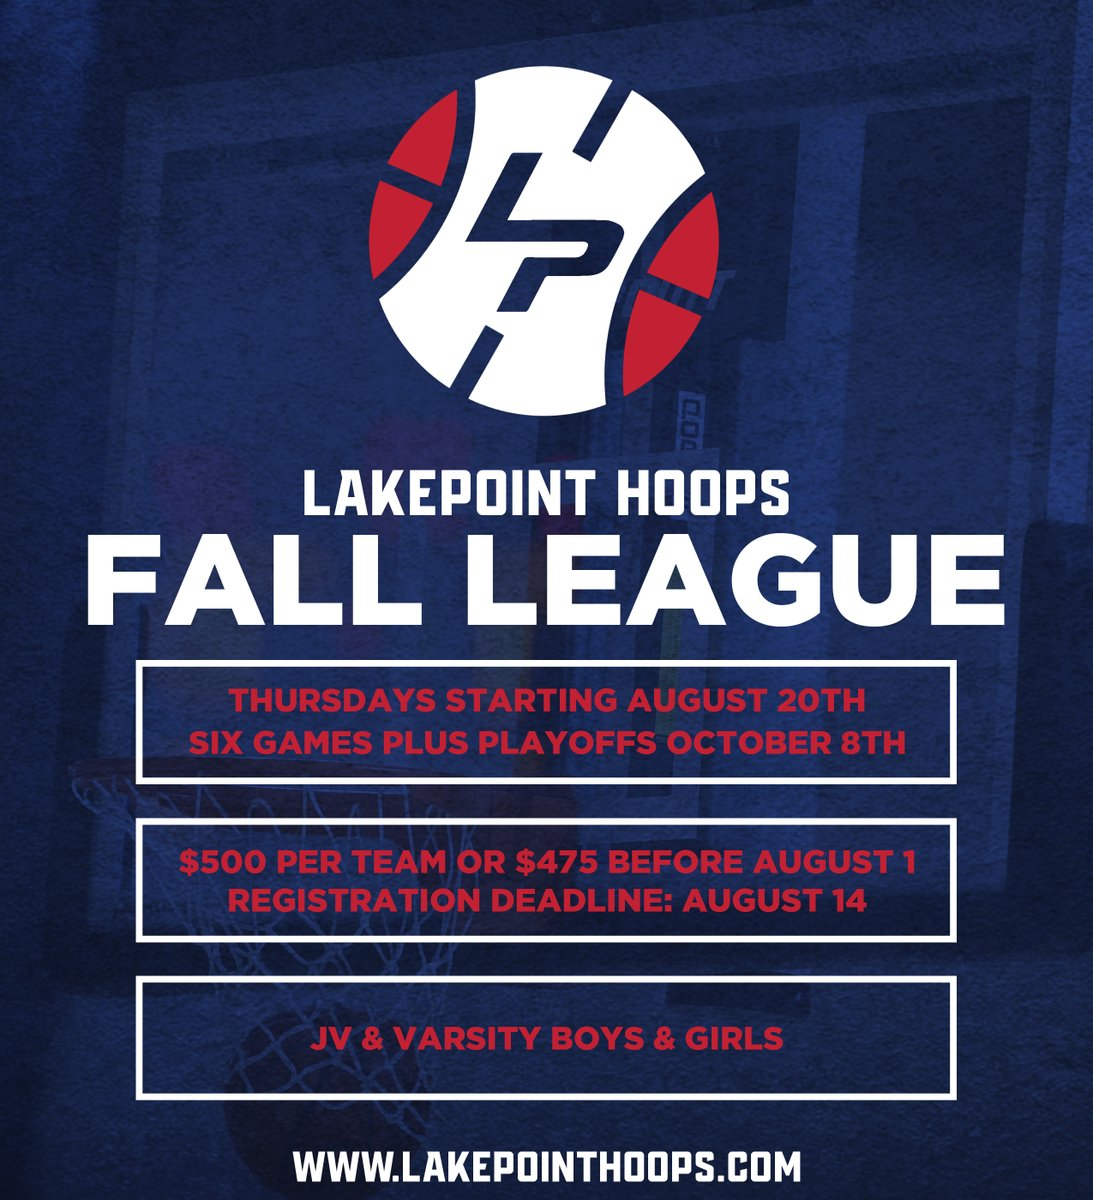 Fall leagues will be more than ever for high school teams preparing for the upcoming season. Go ahead and lock your program in for the #LakePointHoops Fall League at the @LakePointSports Champions Center. Spots are limited!  Register today: https://t.co/x2uZX0WNlb https://t.co/1d2HIboOXI